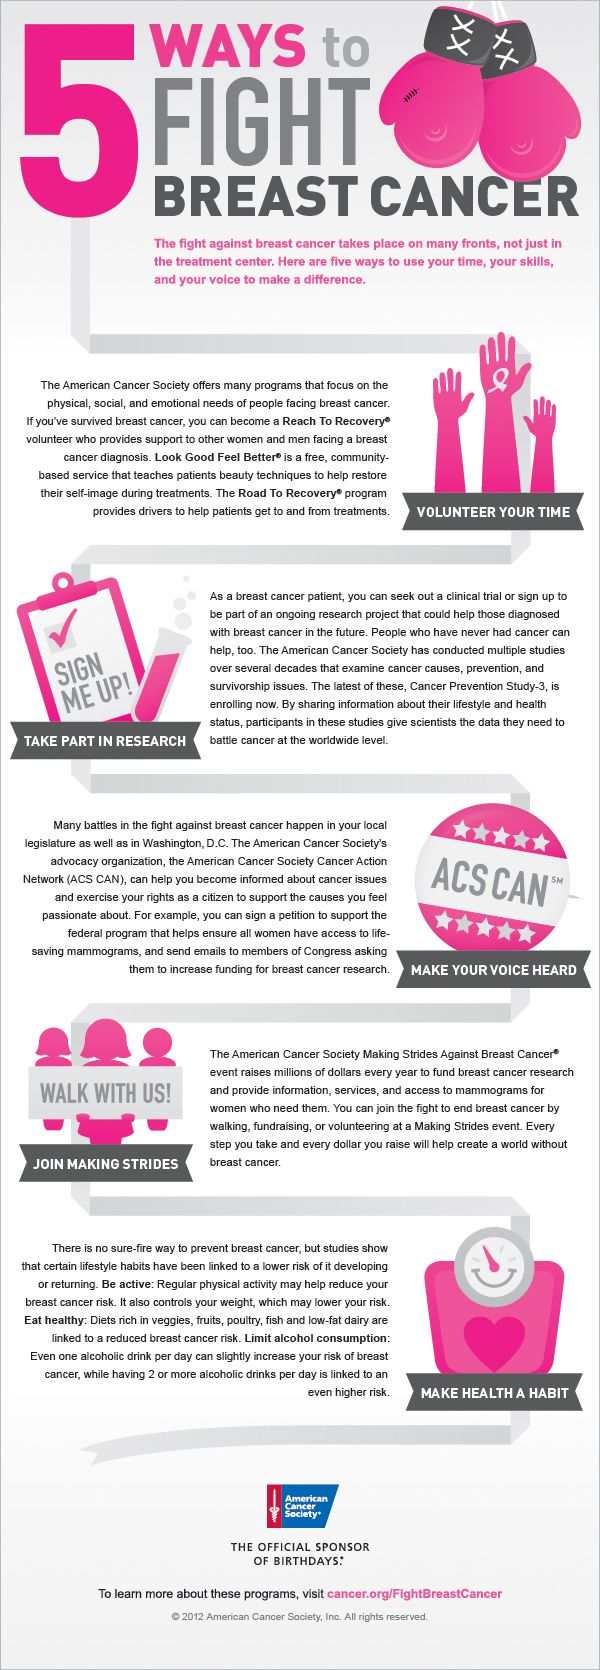 18 best breast cancer infographics images on pinterest breast in honor of breast cancer awareness month here are 5 ways to fight breast cancer infographic from the american cancer society the official sponsor of toneelgroepblik Images